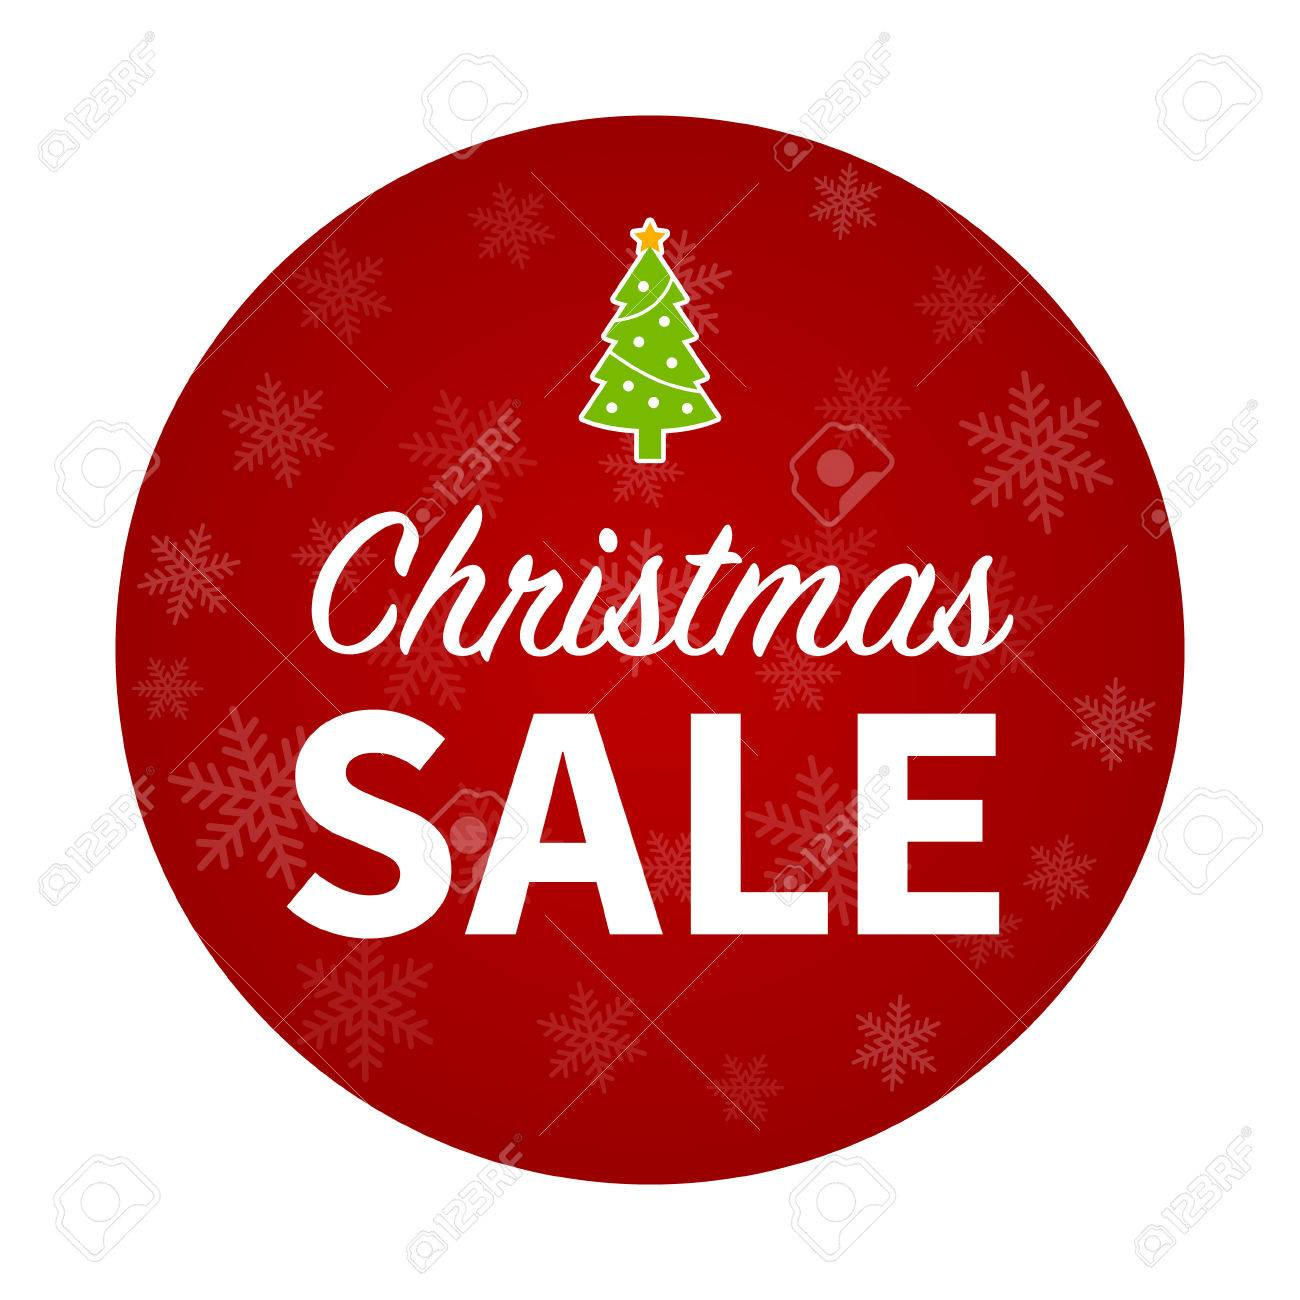 ee6c1601843b Merry Christmas sale promotion with Christmas tree Stock Vector - 43928836